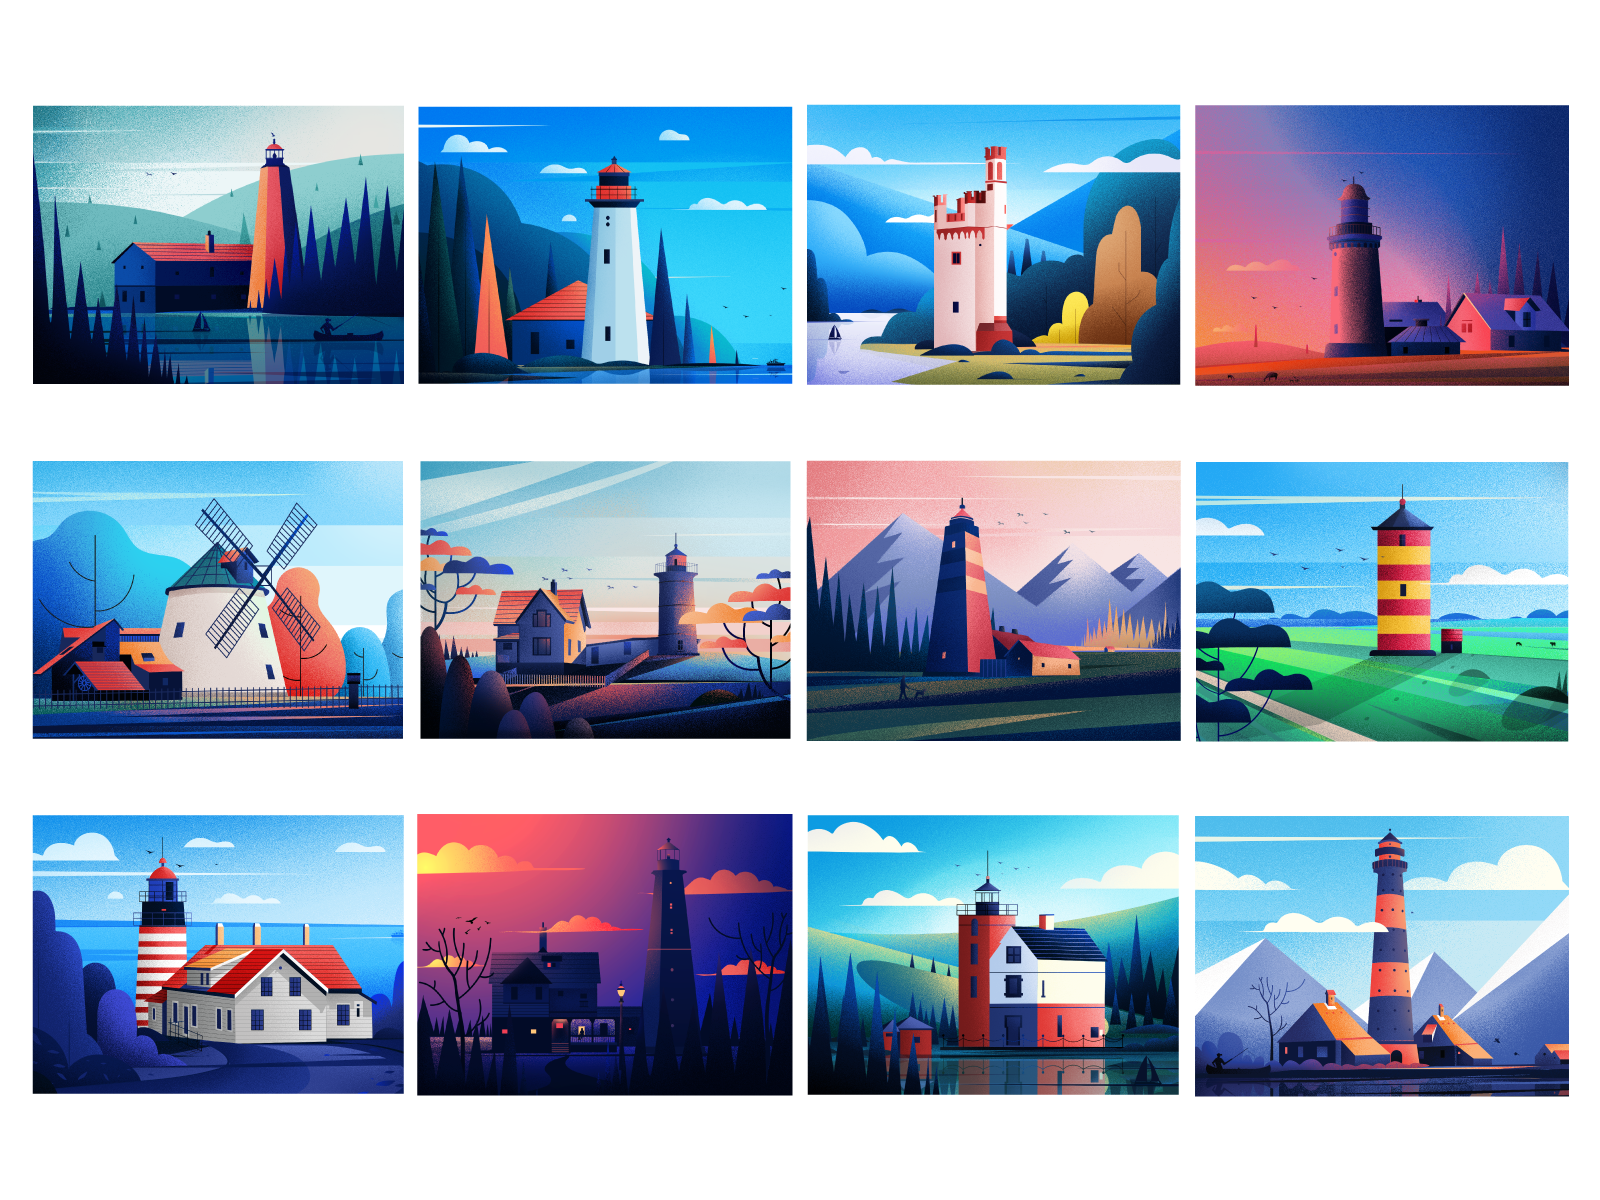 Lighthouse project. student project behance project windmills clouds hill art nature design house sunset evening blue tree illustrations winter light landscape illustration lighthouse